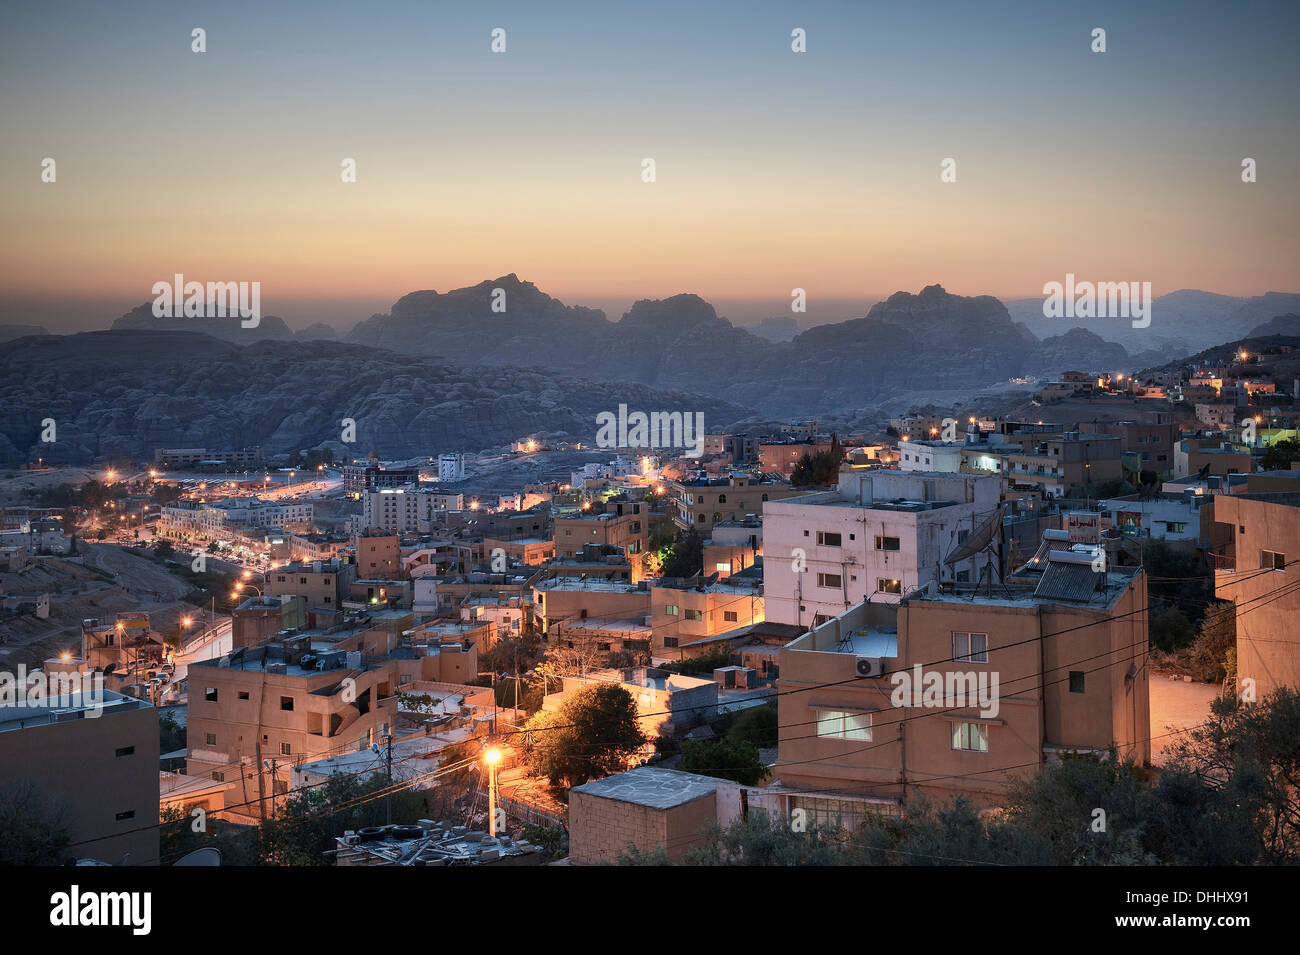 View of Wadi Musa in the evening, Petra, Jordan, Middle East, Asia - Stock Image